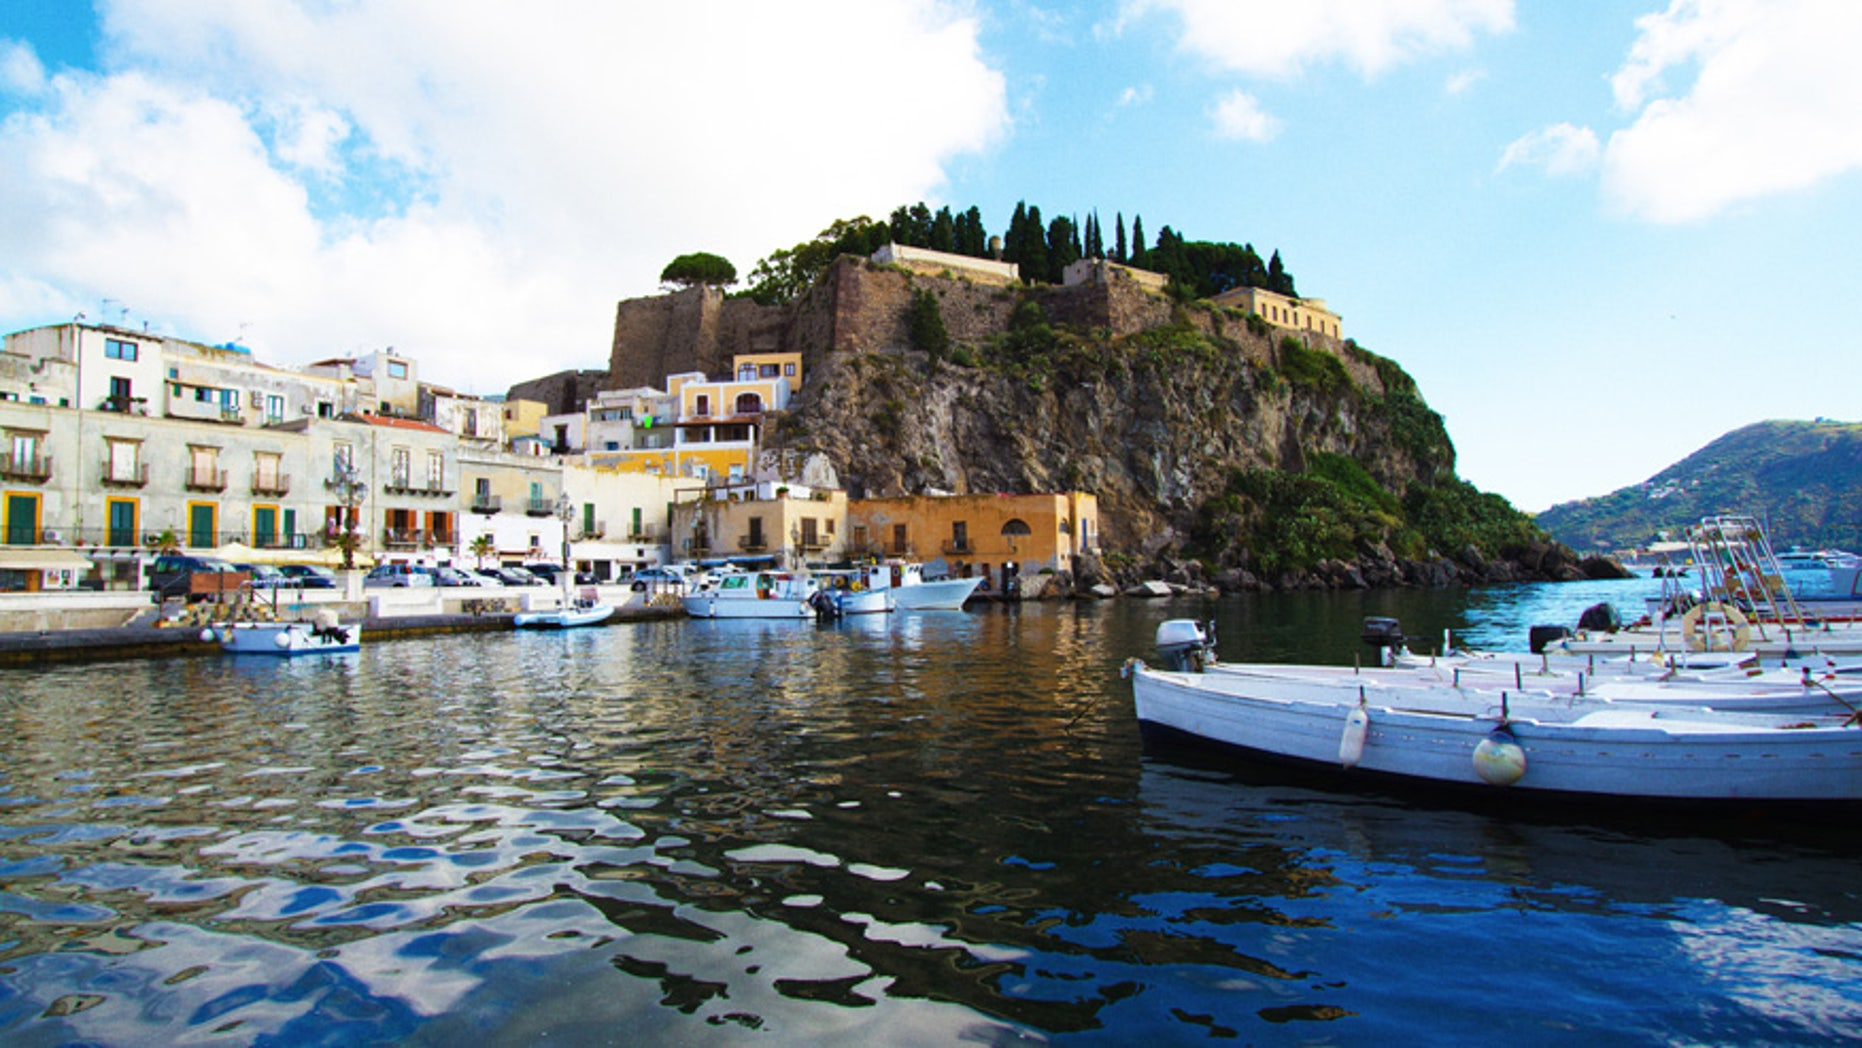 Sicilian fishermen in the Aeolian Islands claim that dolphins are literally eating up their profits.